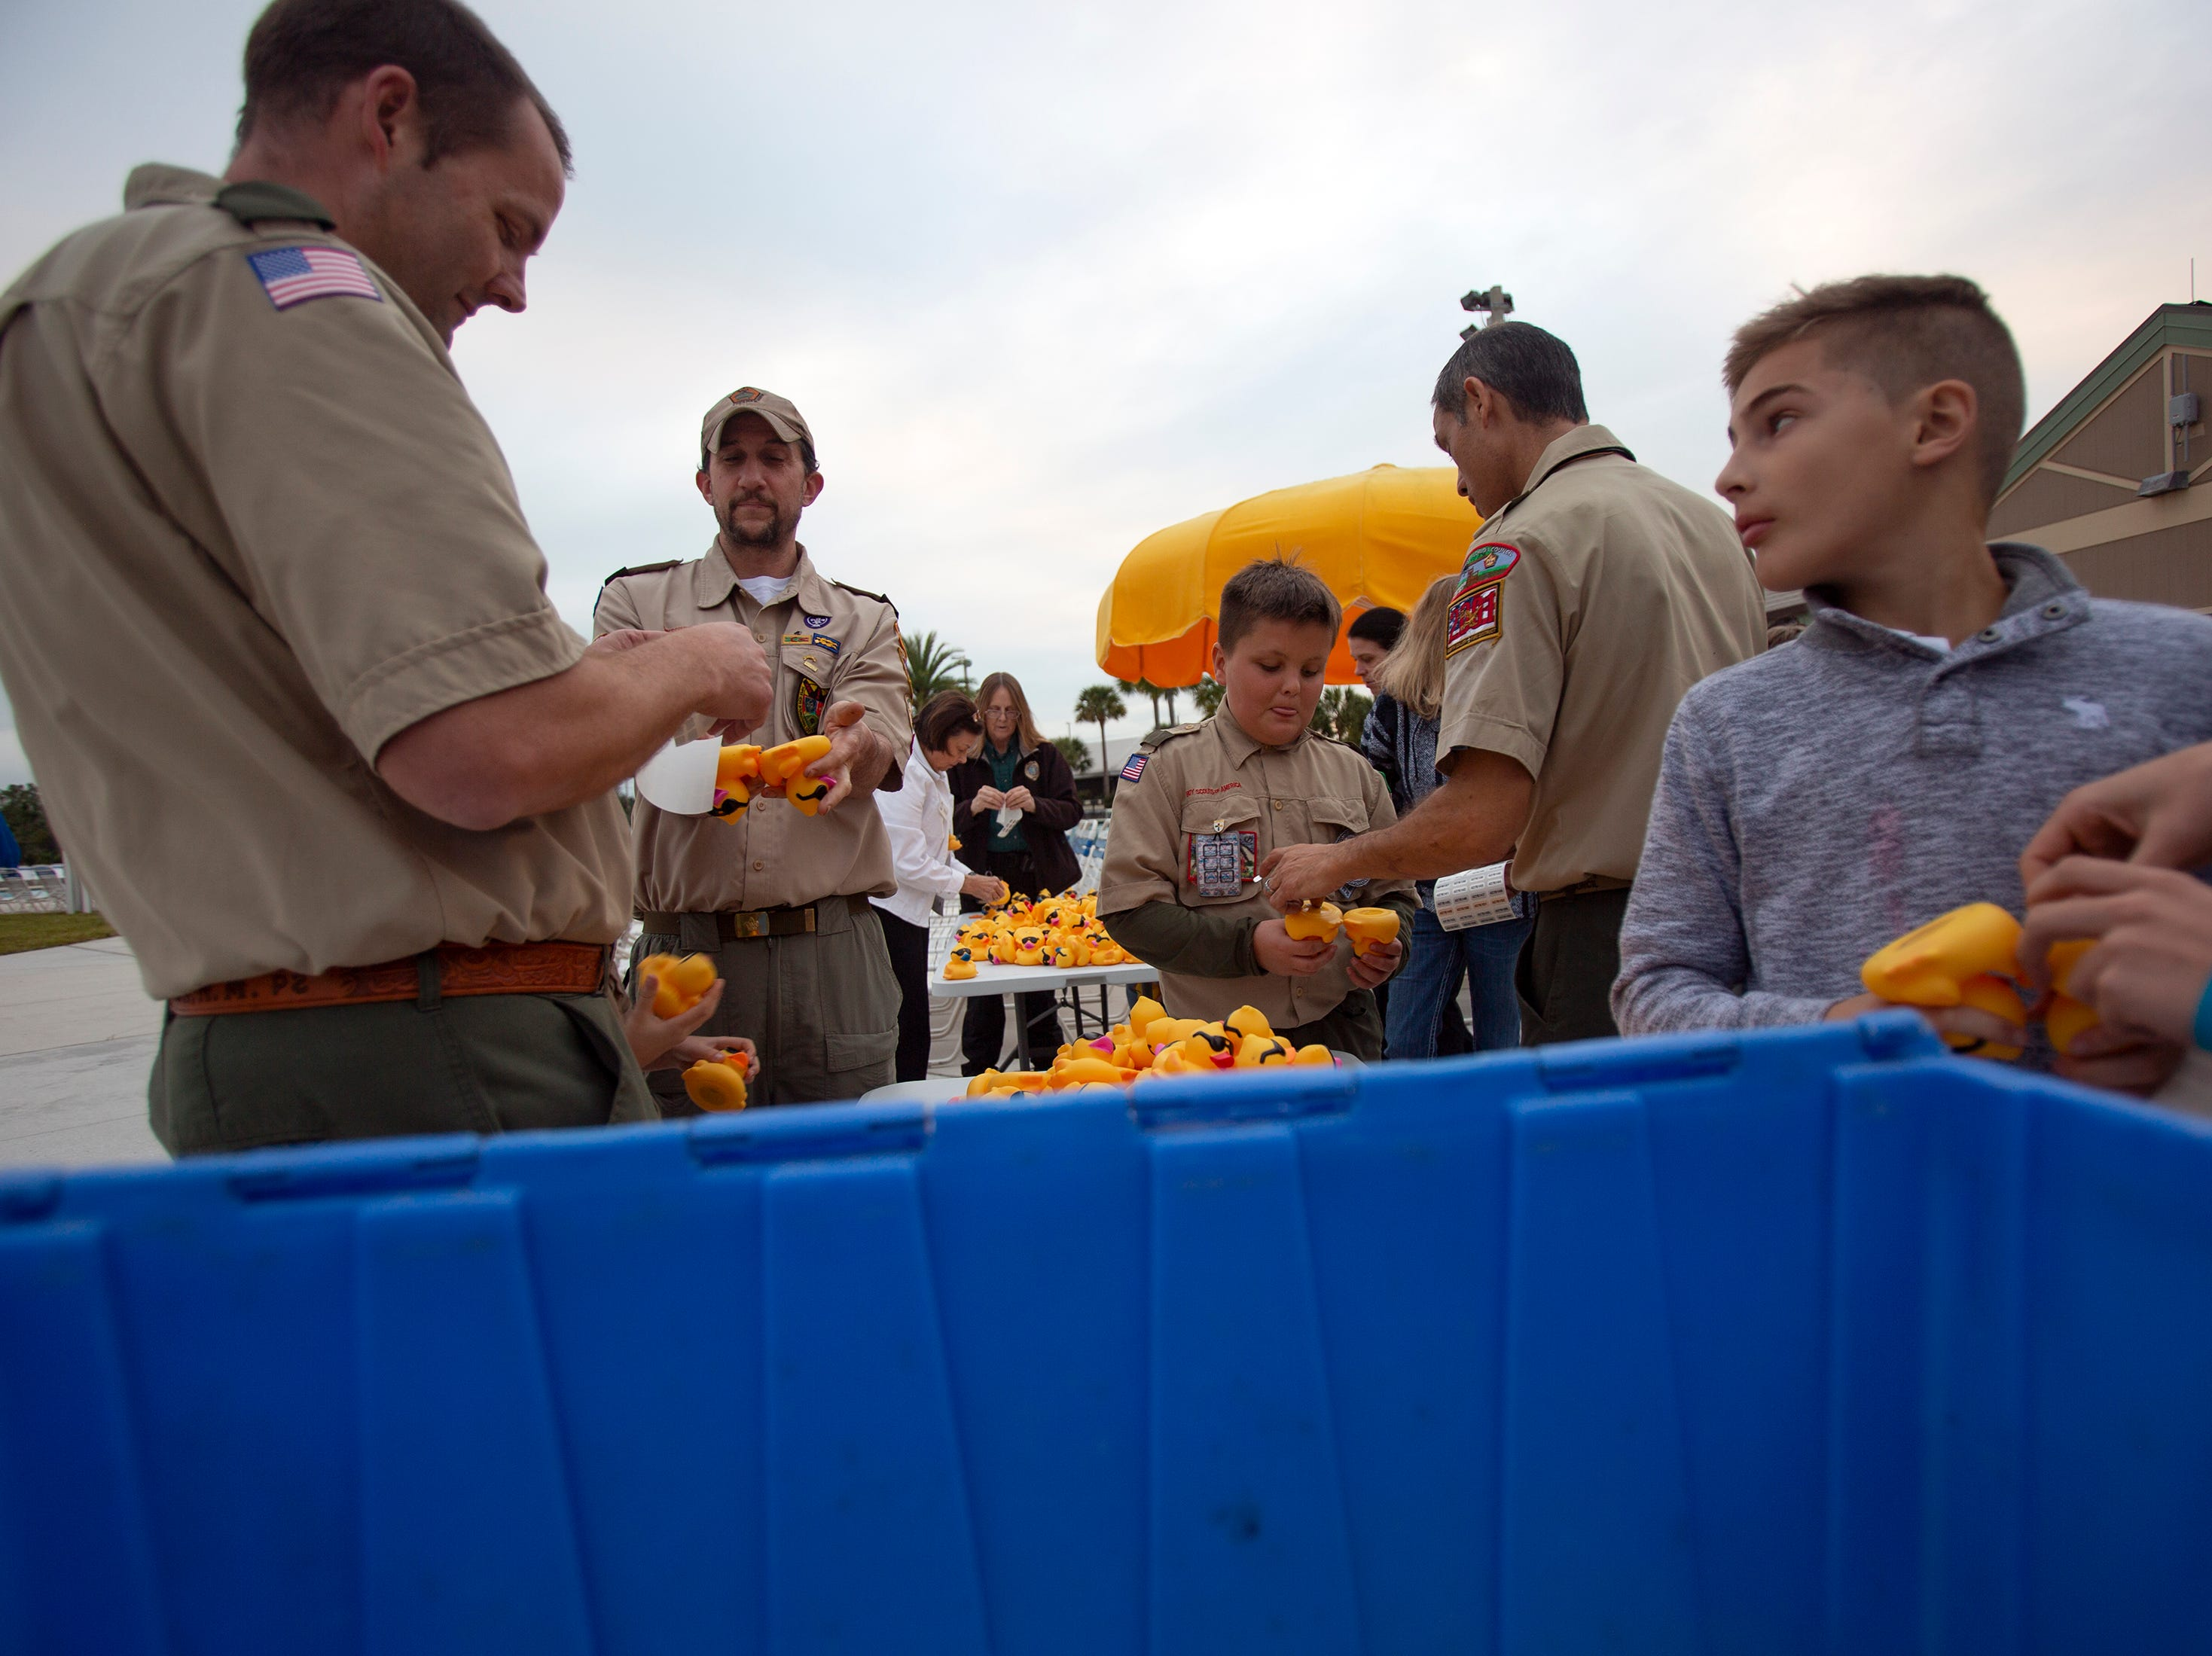 Members of Boy Scout Troop 2001 place tags on rubber ducks, Wednesday, Jan. 30, 2019, at the North Collier Regional Park in East Naples.